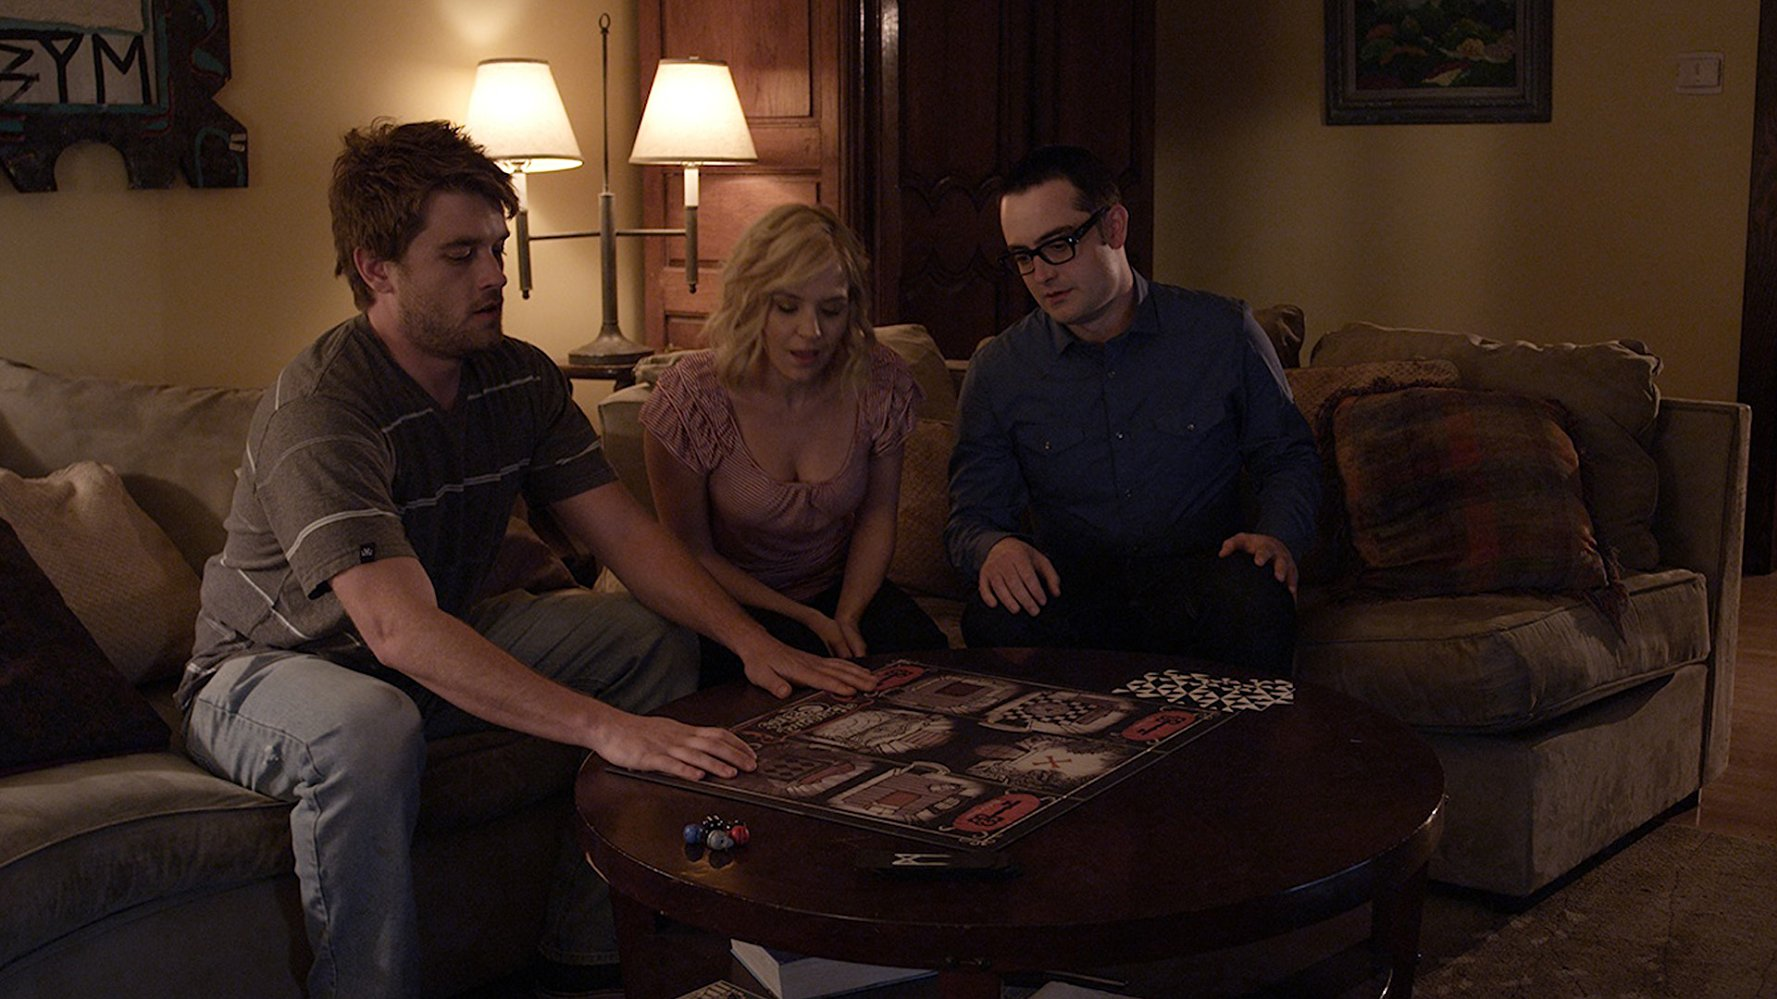 Brothers Chase Williamson and Graham Skipper with the latter's girlfriend Brea Grant sit down to play the video boardgame in Beyond the Gates (2016)